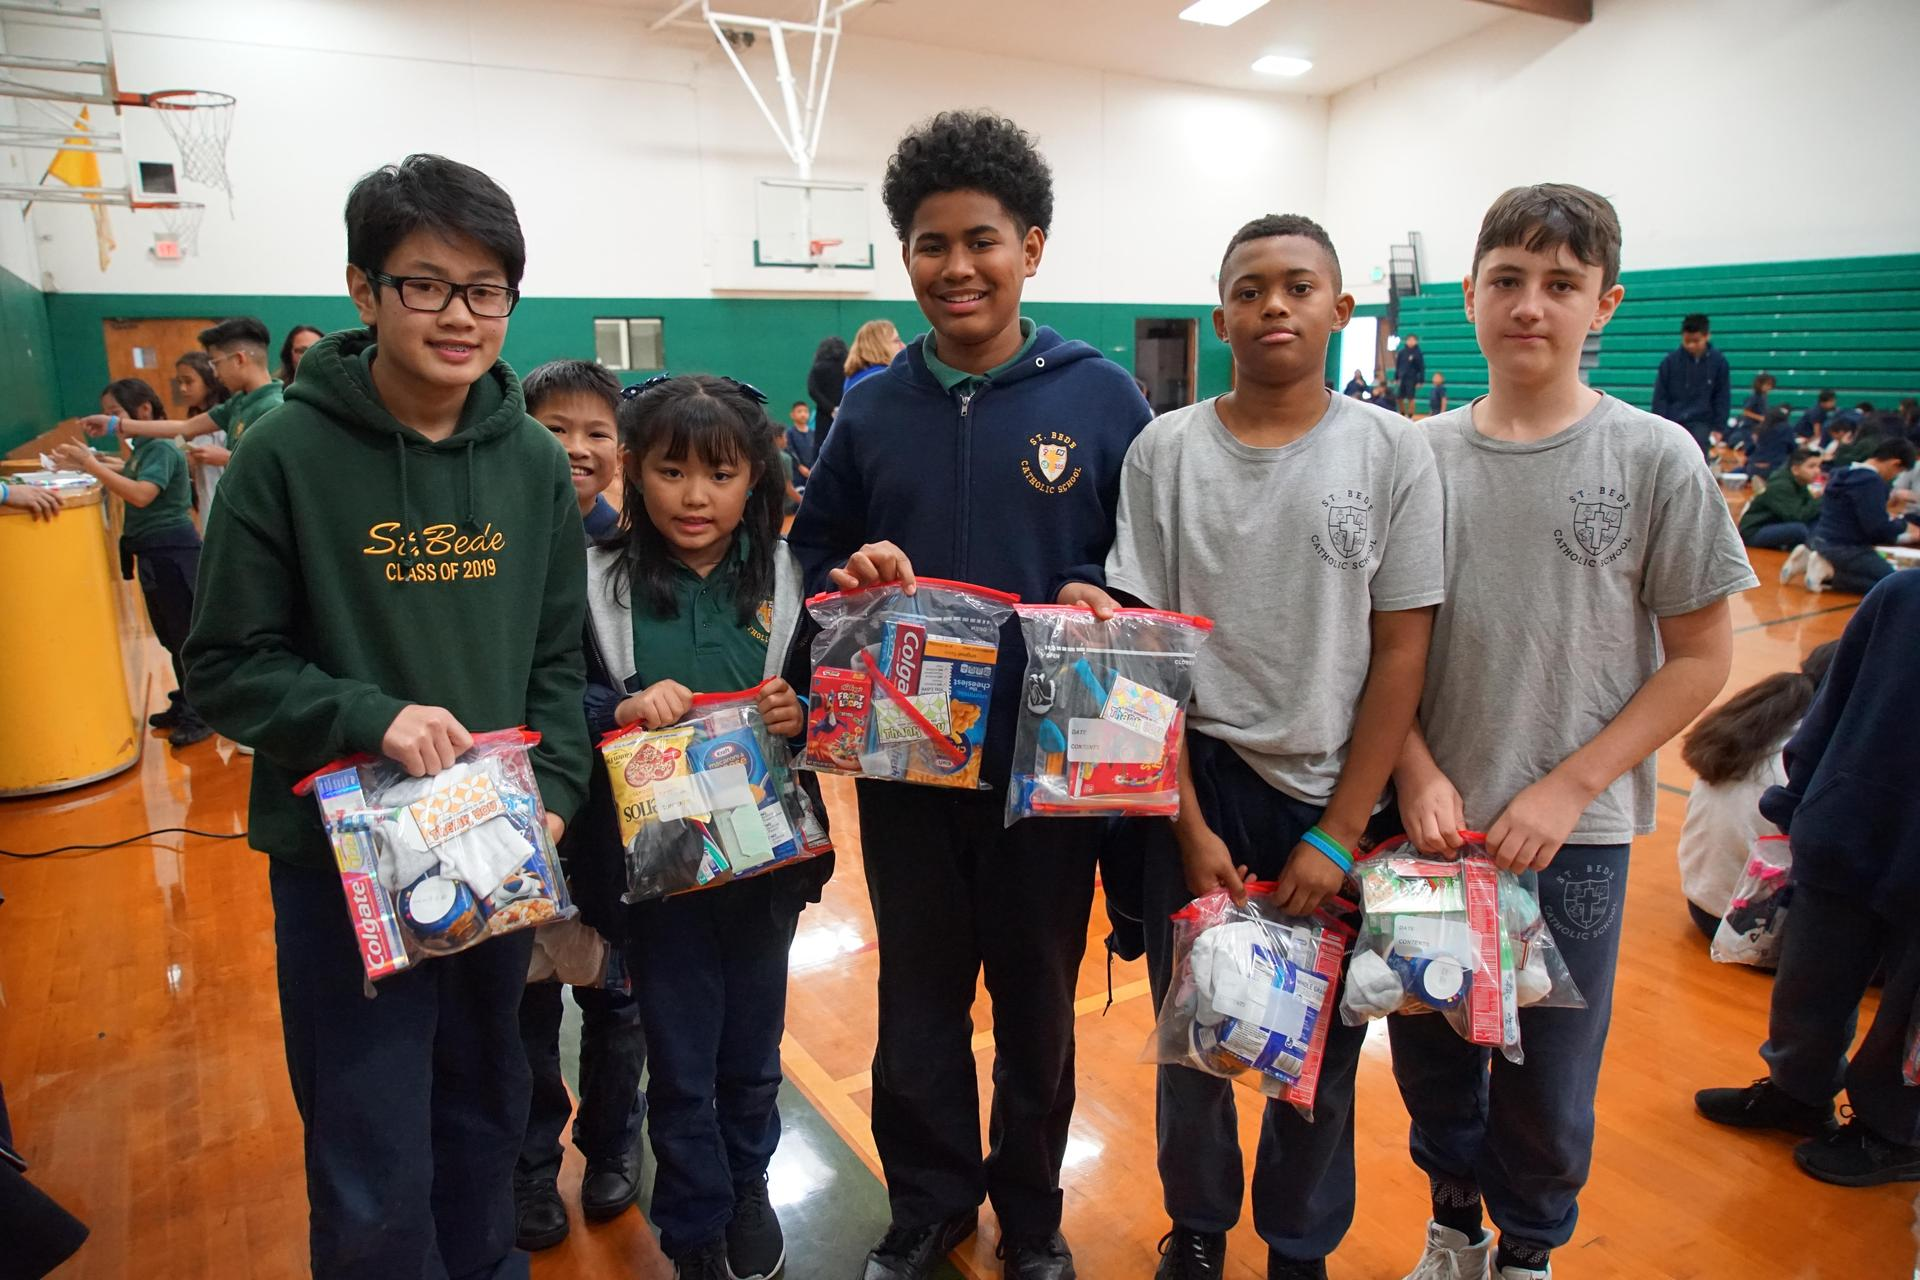 School-wide service learning project for the Society of St. Vincent de Paul